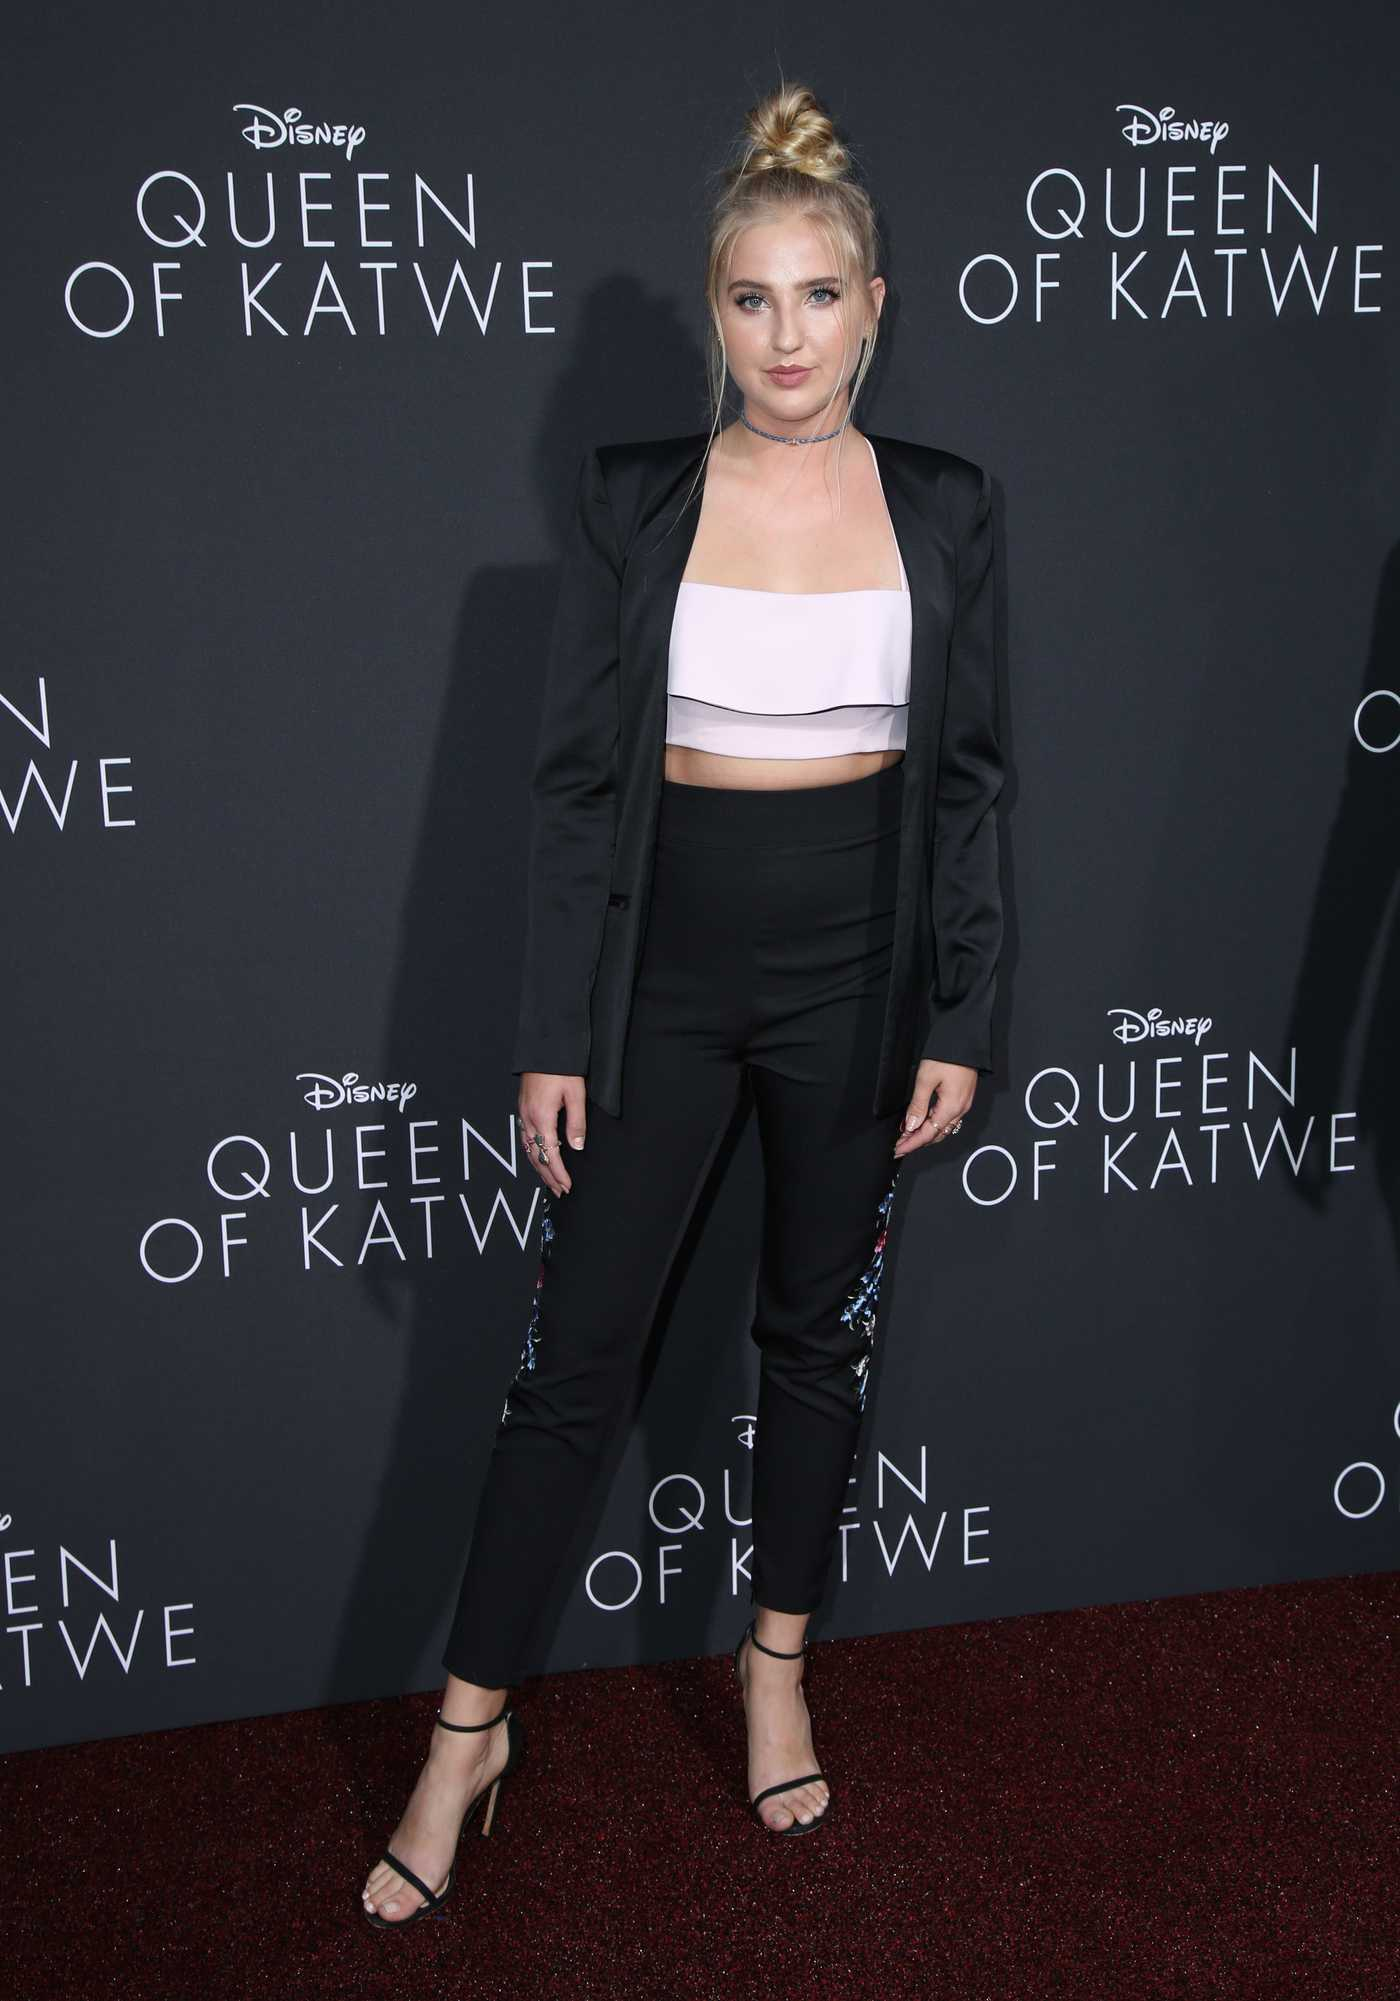 Veronica Dunne at the Queen of Katwe LA Premiere 09/21/2016